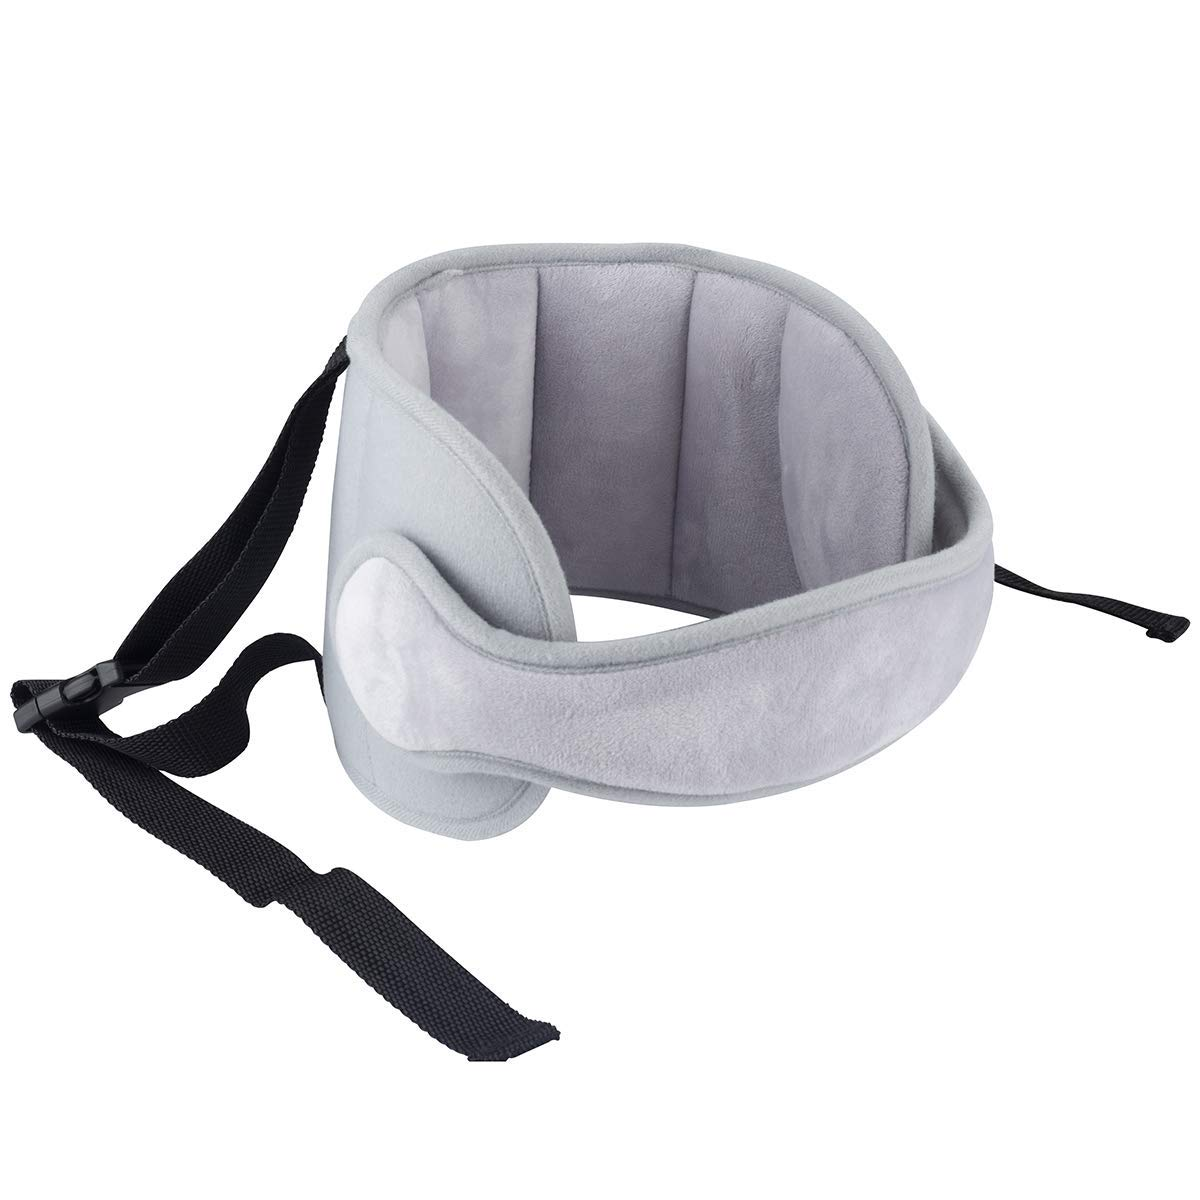 Luchild Head Support Travel Car Seat Stroller Child Head Protection Neck Relief for Toddler Baby Kids (Grey)